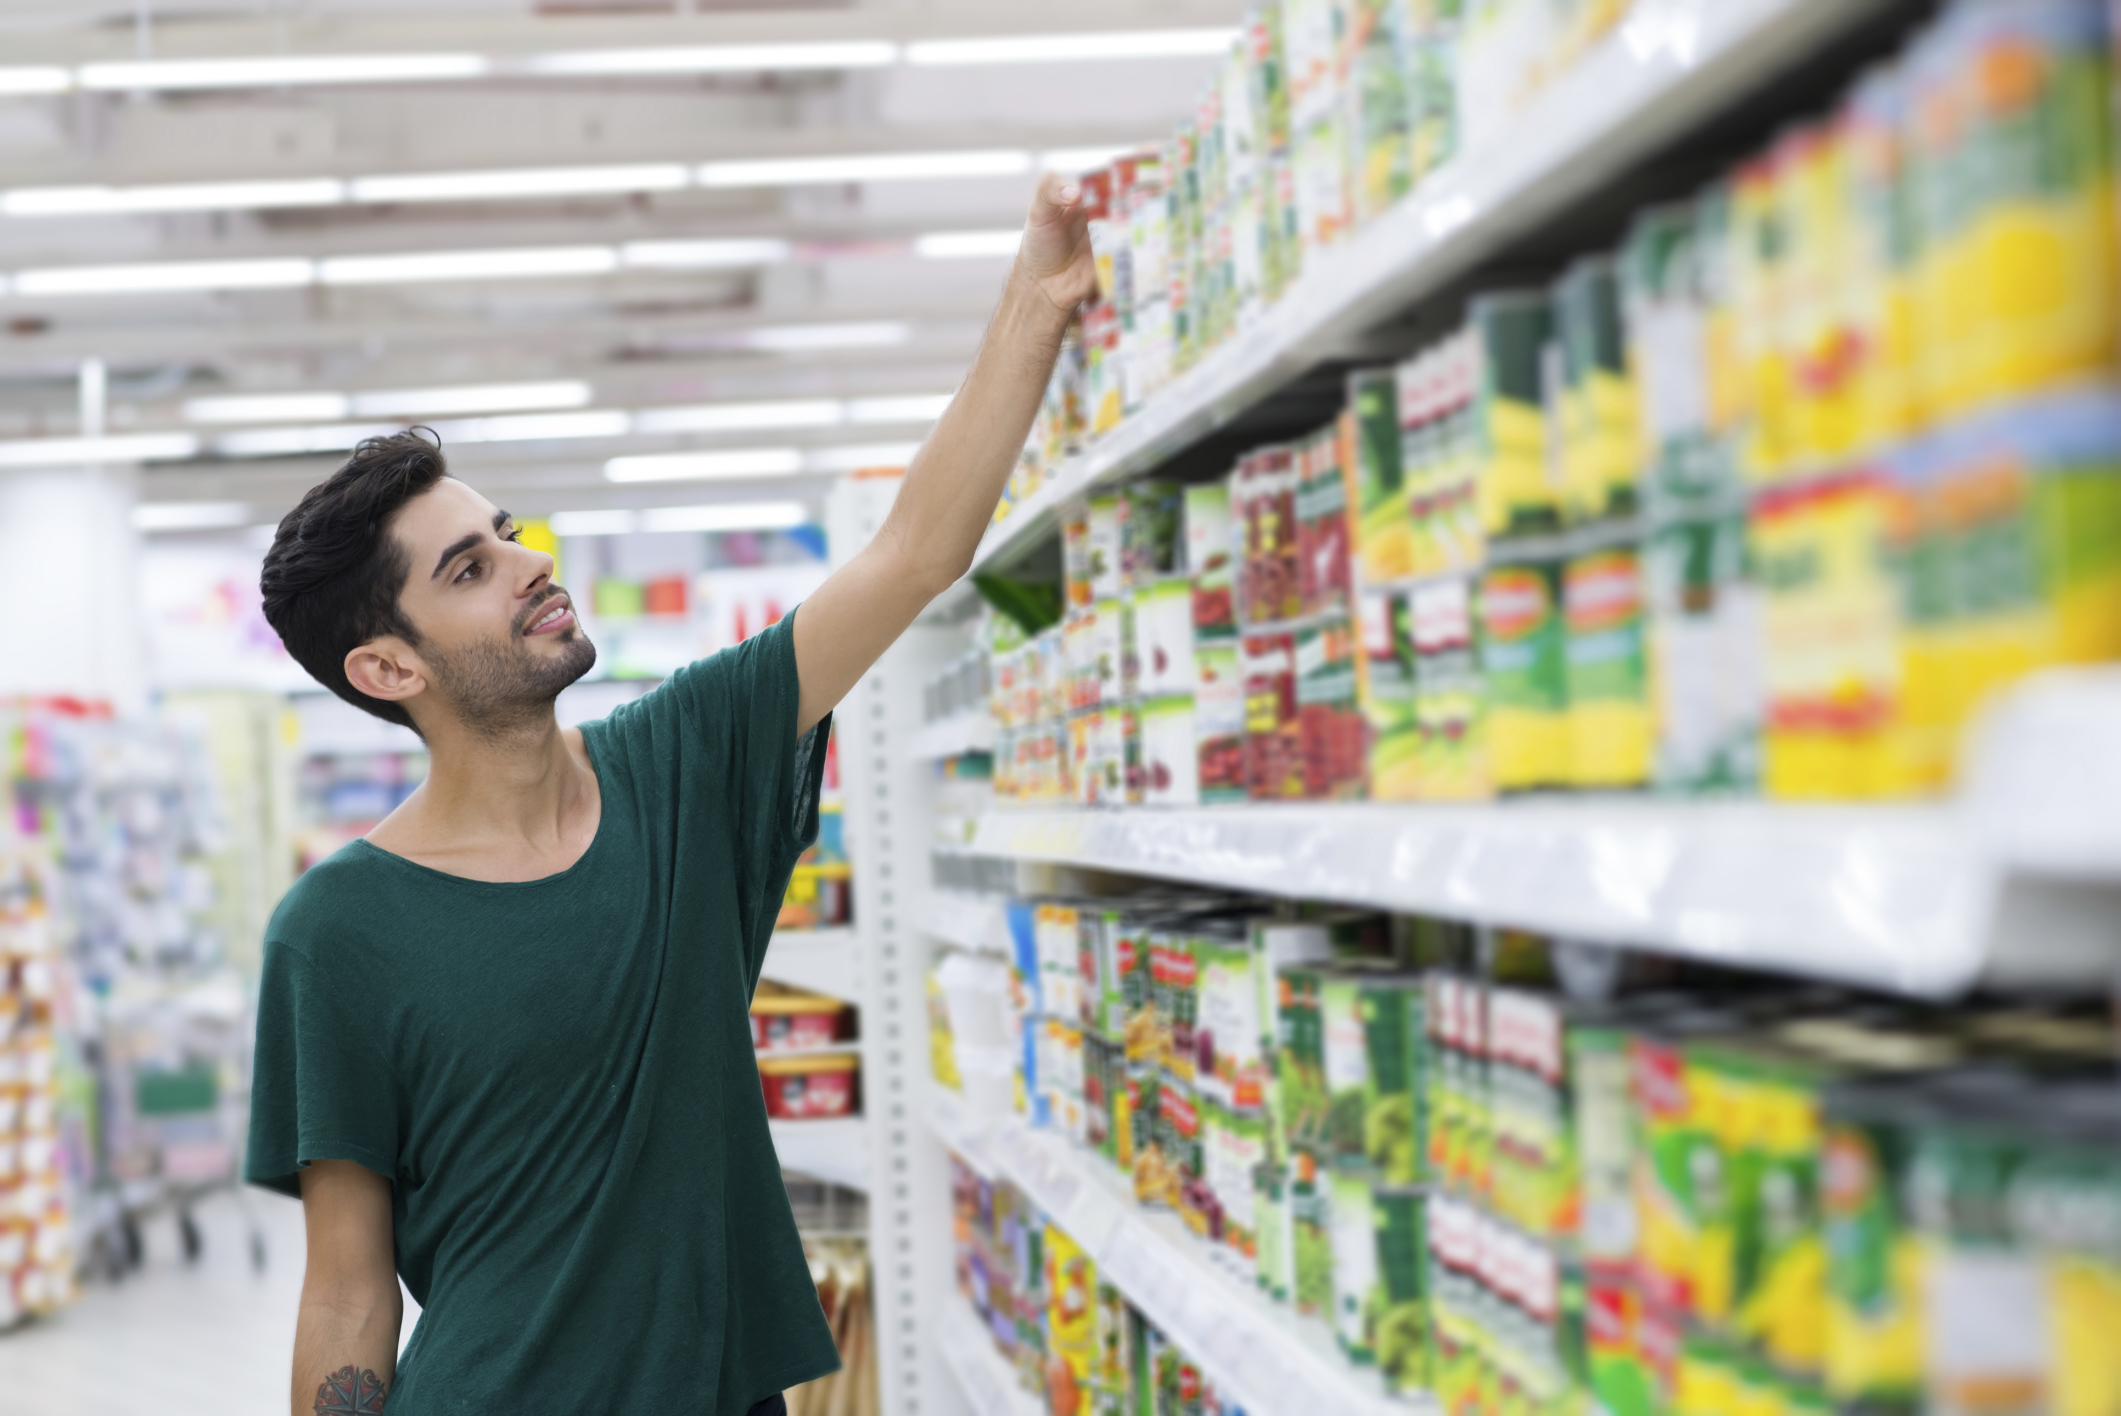 Many brands still lining canned foods with BPA, report finds